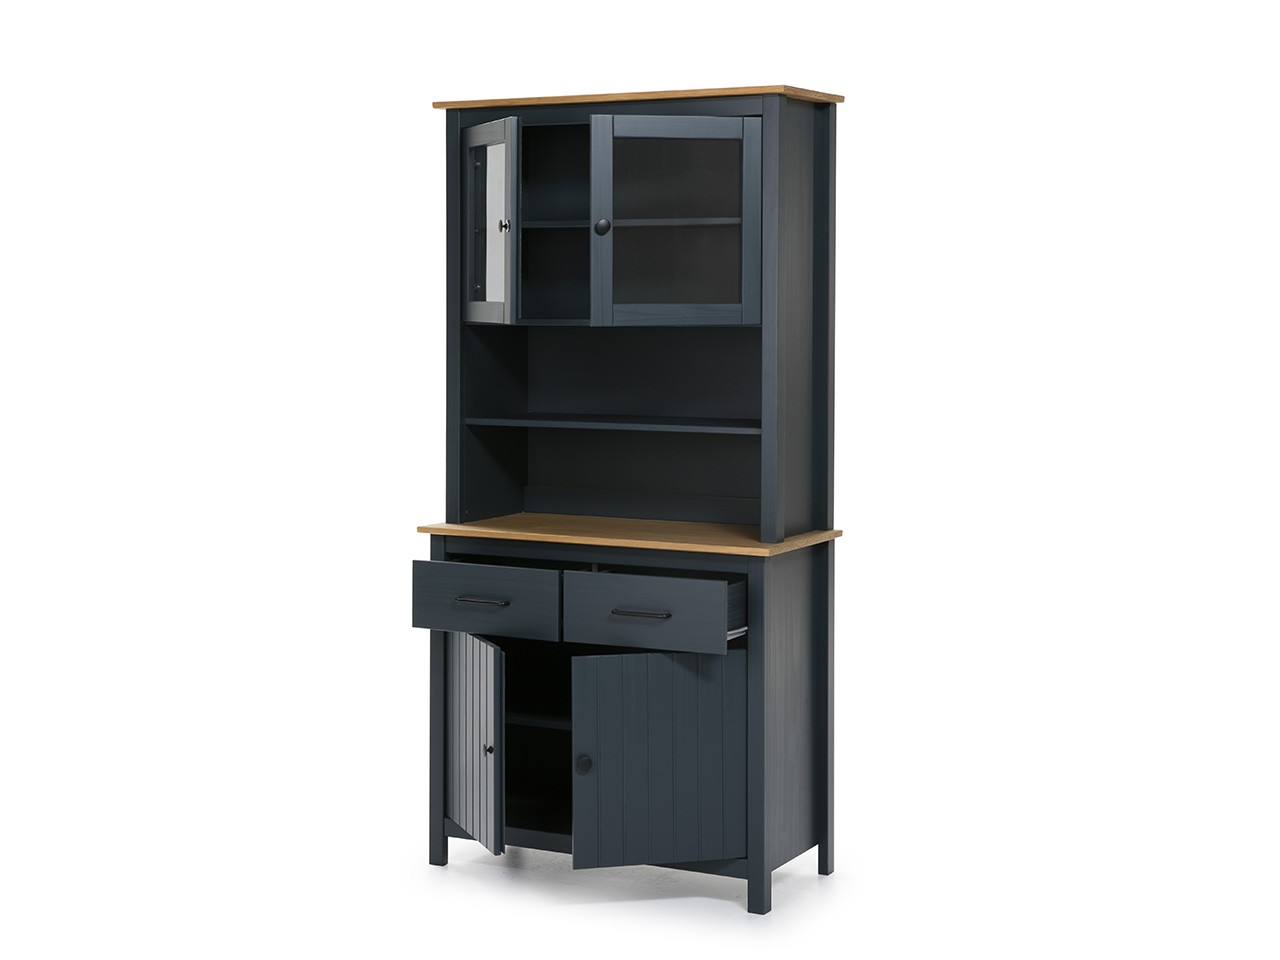 Sillon Reclinable Barato Trendy Cines En Casa Con